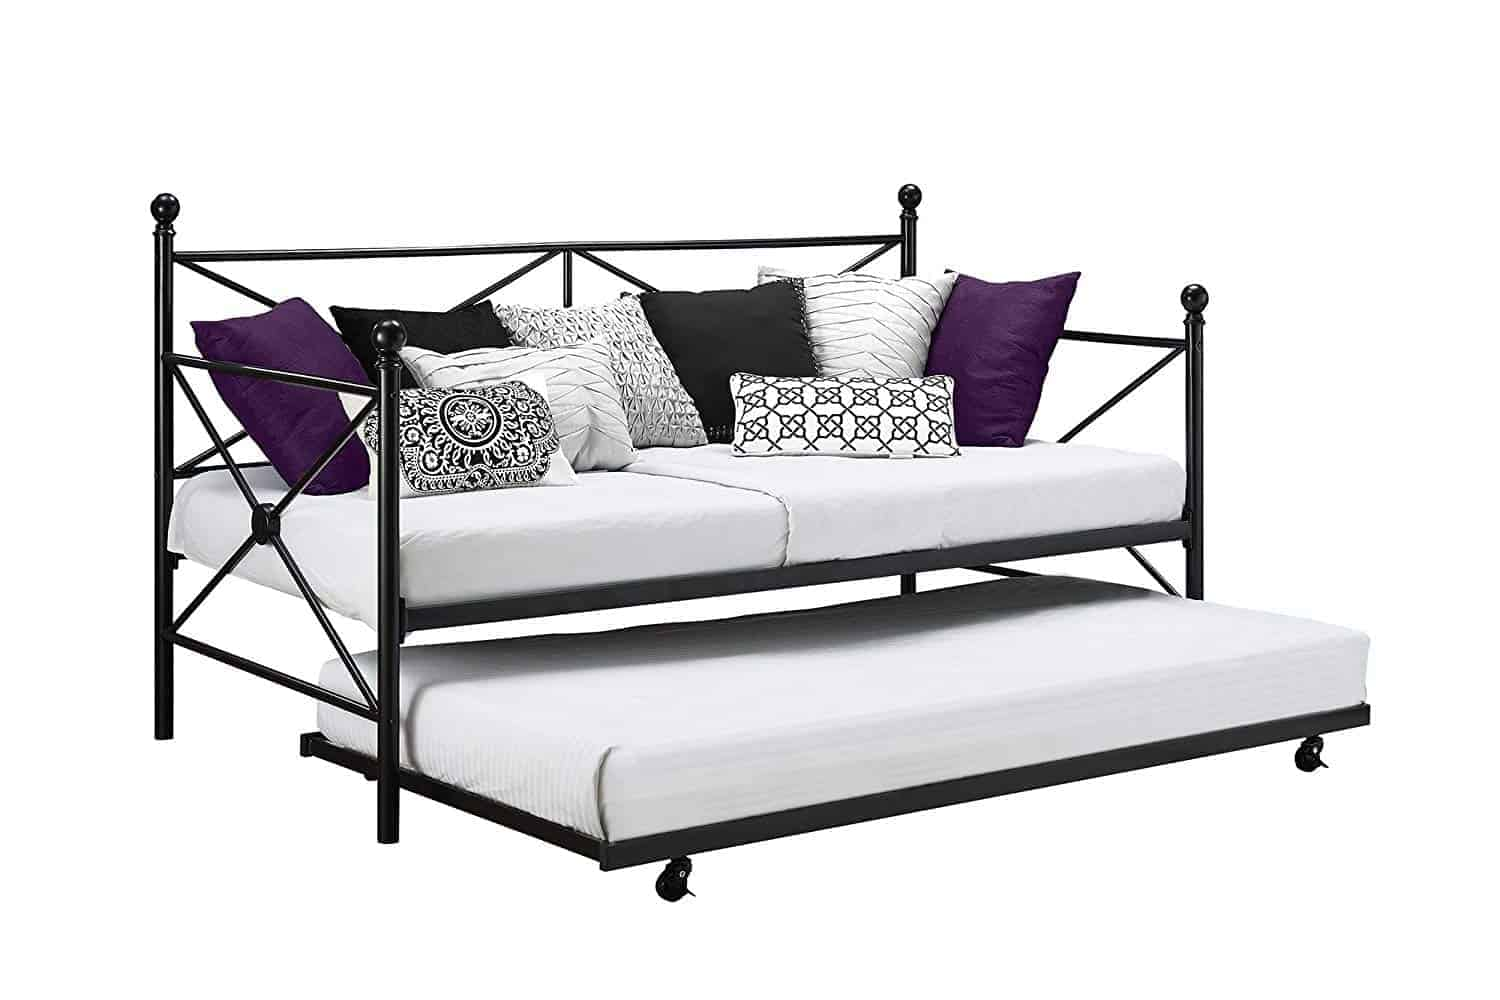 Best Pop Up Trundle Beds For Adults